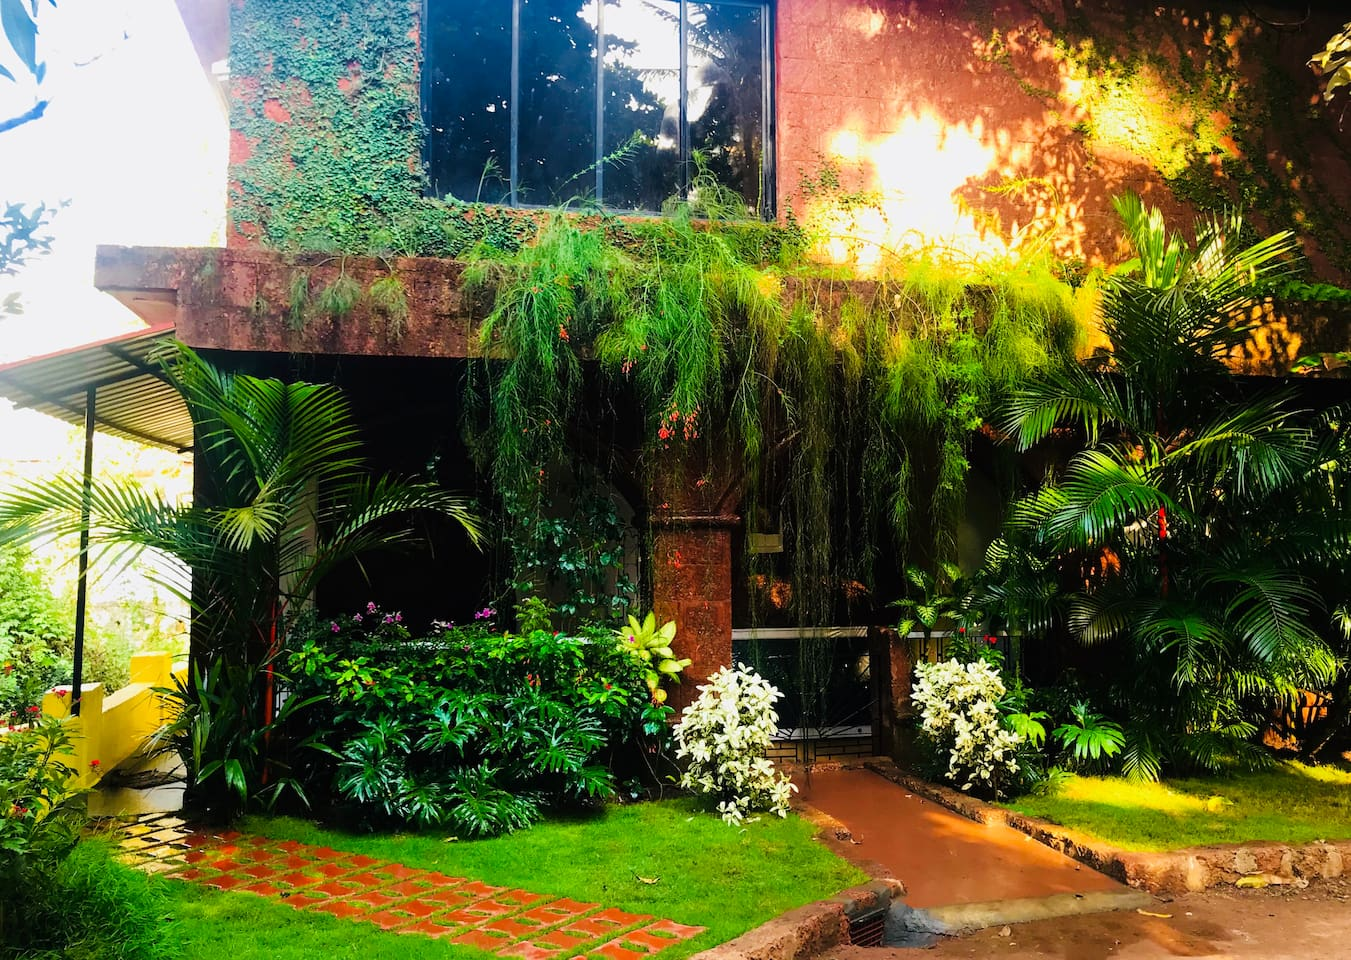 TWO BEDROOM house in a SENIC & QUIET goan village - Houses for Rent ...